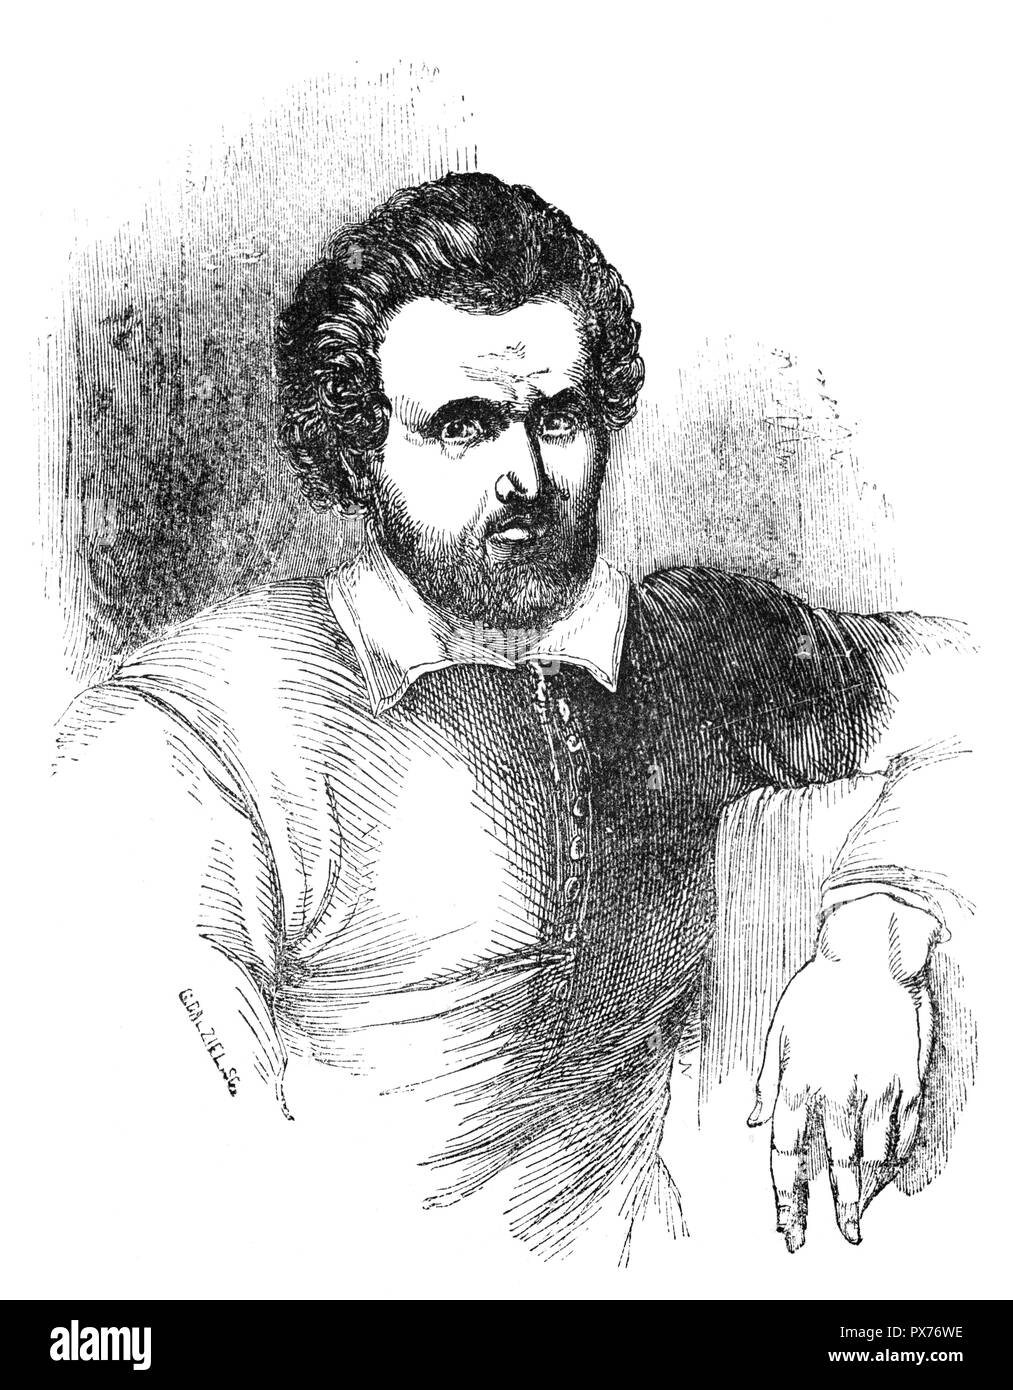 Benjamin Jonson (1572-1637) was an English playwright, poet, actor, and literary critic, whose artistry exerted a lasting impact upon English poetry and stage comedy. He popularised the comedy of humours and is best known for the satirical plays Volpone and The Alchemist (1610) and for his lyric and epigrammatic poetry. He is generally regarded as the second most important English playwright during the reign of James VI and I after William Shakespeare. He died in 1637 and is buried in the north aisle of Westminster Abbey, with the inscription 'O Rare Ben Johnson' over his grave. - Stock Image